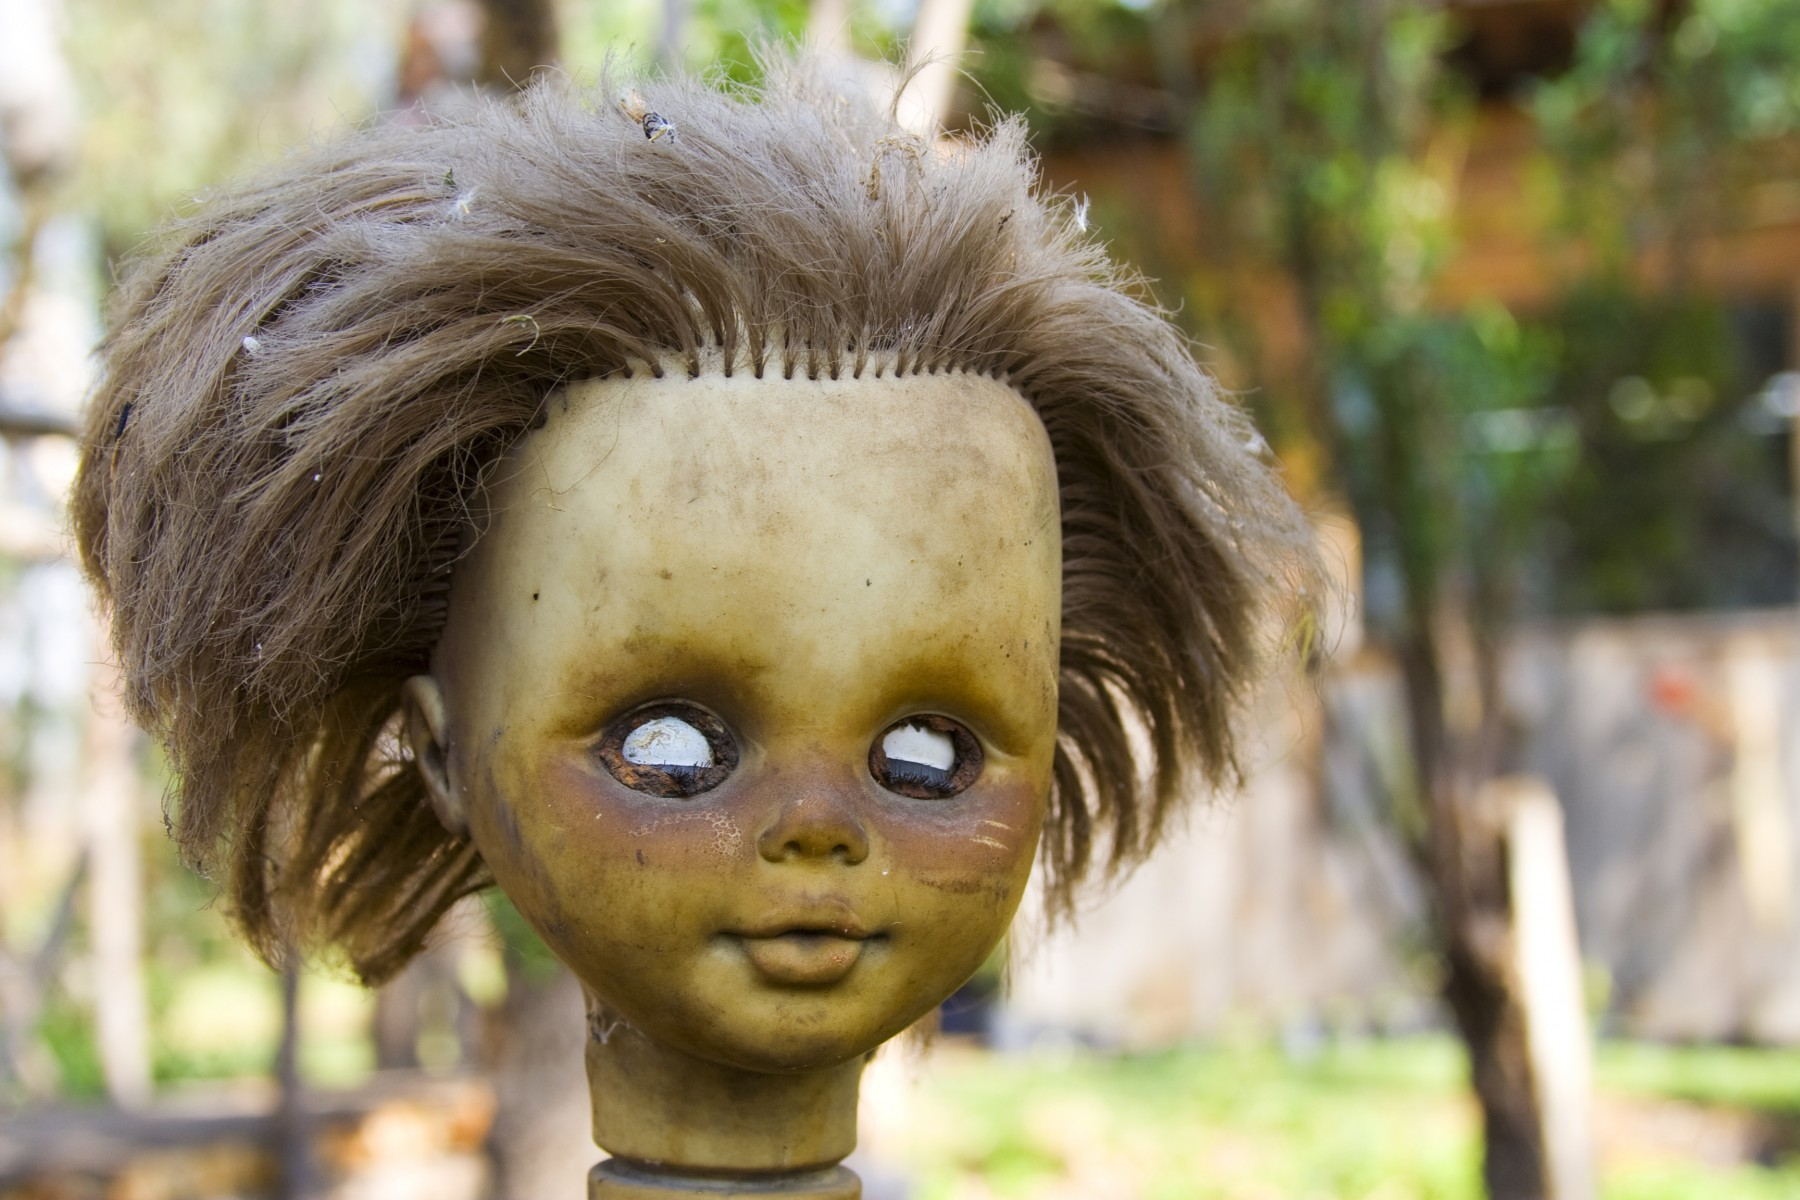 The Island of the Dolls in the Xochimilco´s lagoon